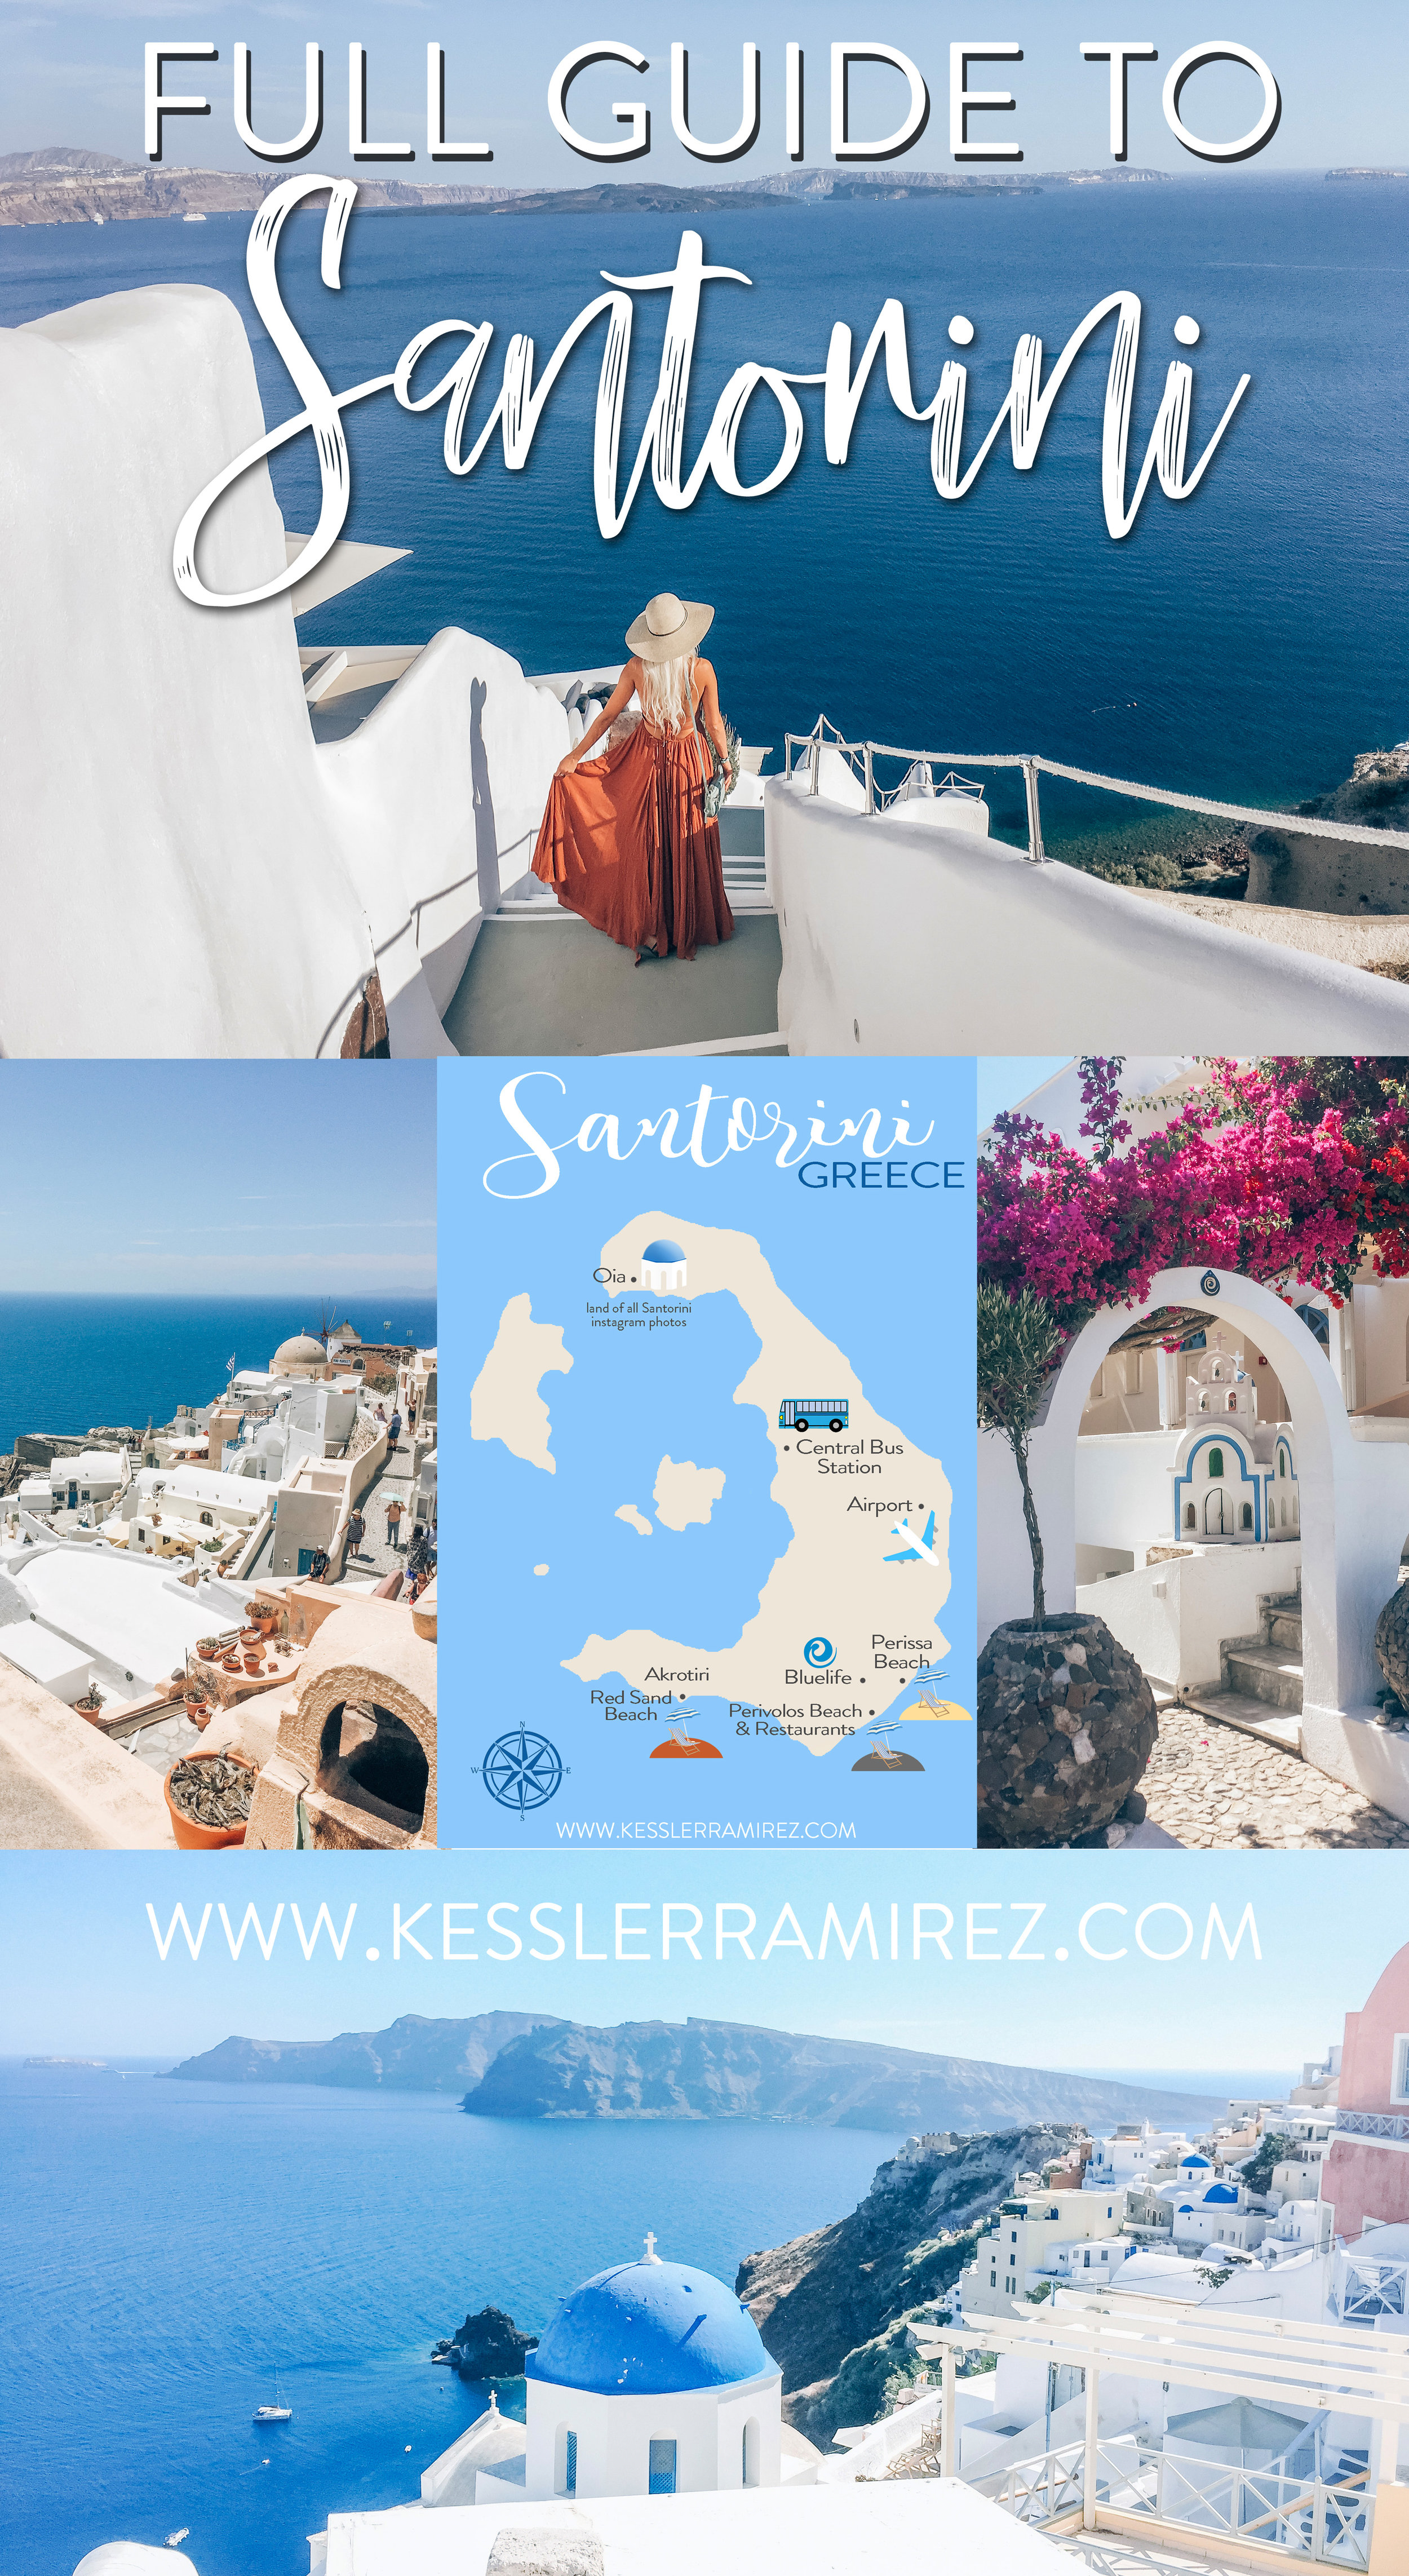 Full Travel Guide to Santorini, Greece – Kessler Ramirez